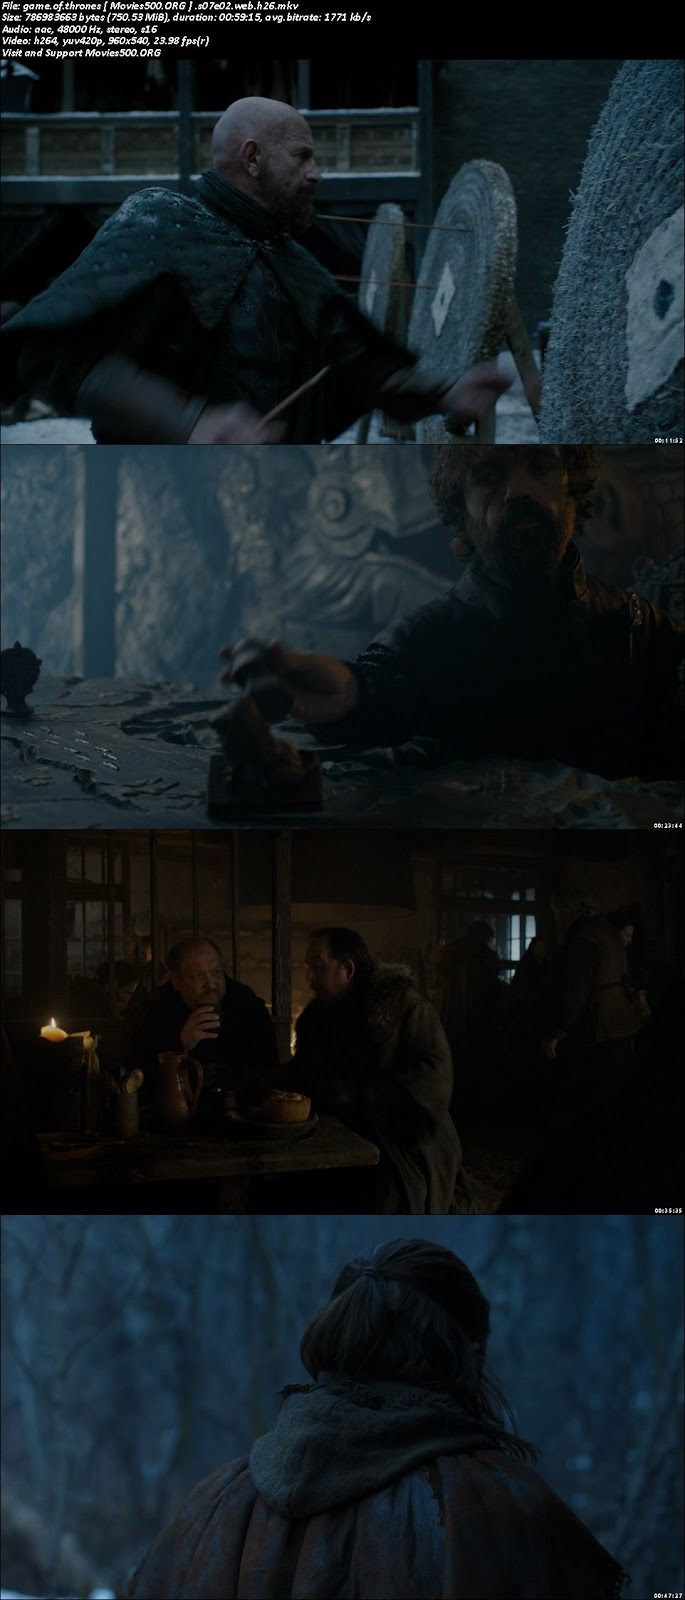 Game of Thrones 2017 Season 07 Episode 02 HD Download at xcharge.net